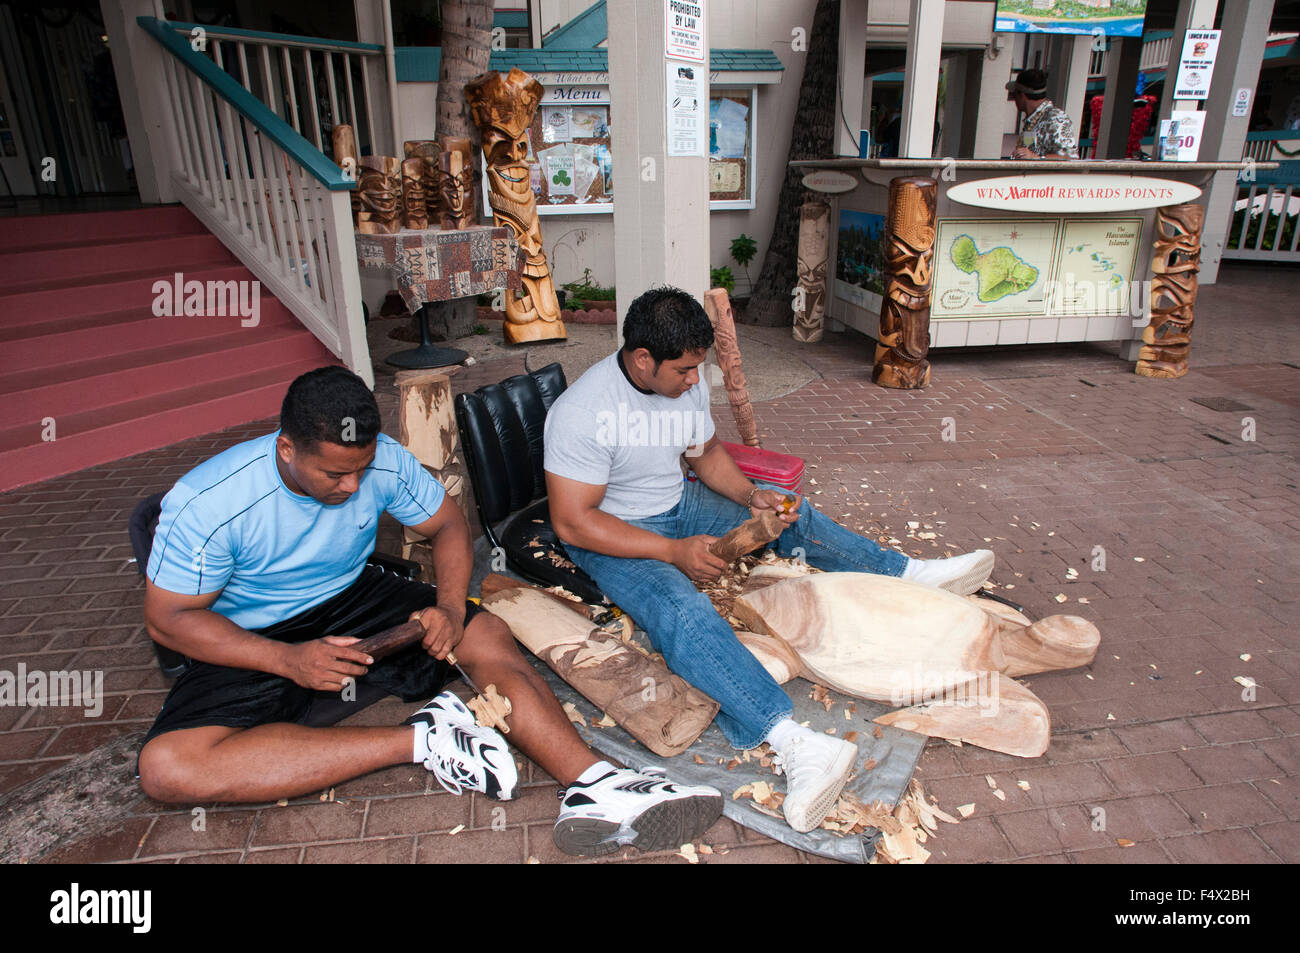 master woodworker and carver, in the Lahaina Cannery Shopping Center, works on crafts - Stock Image